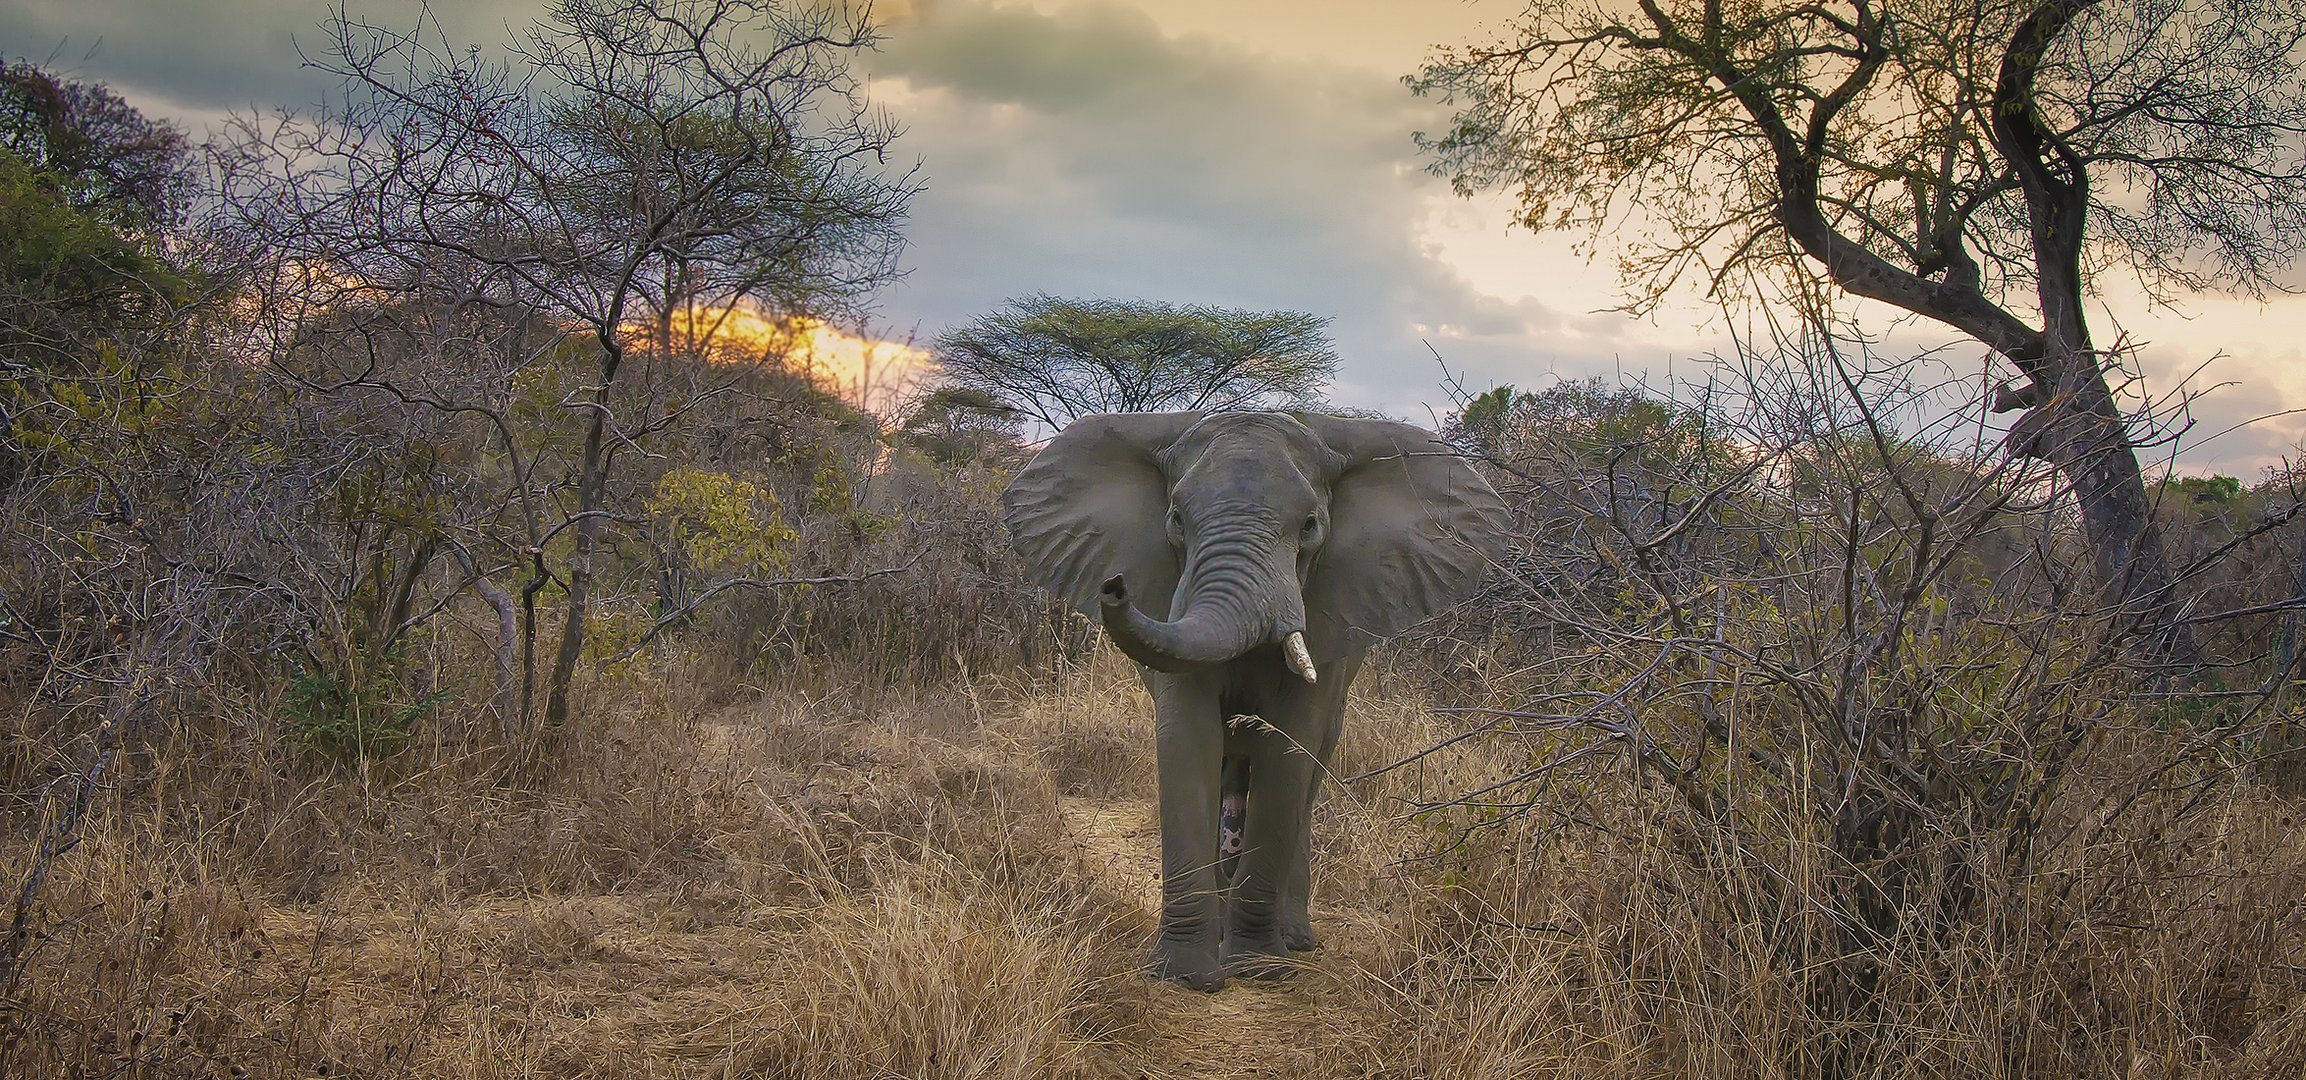 Abends in Ruaha